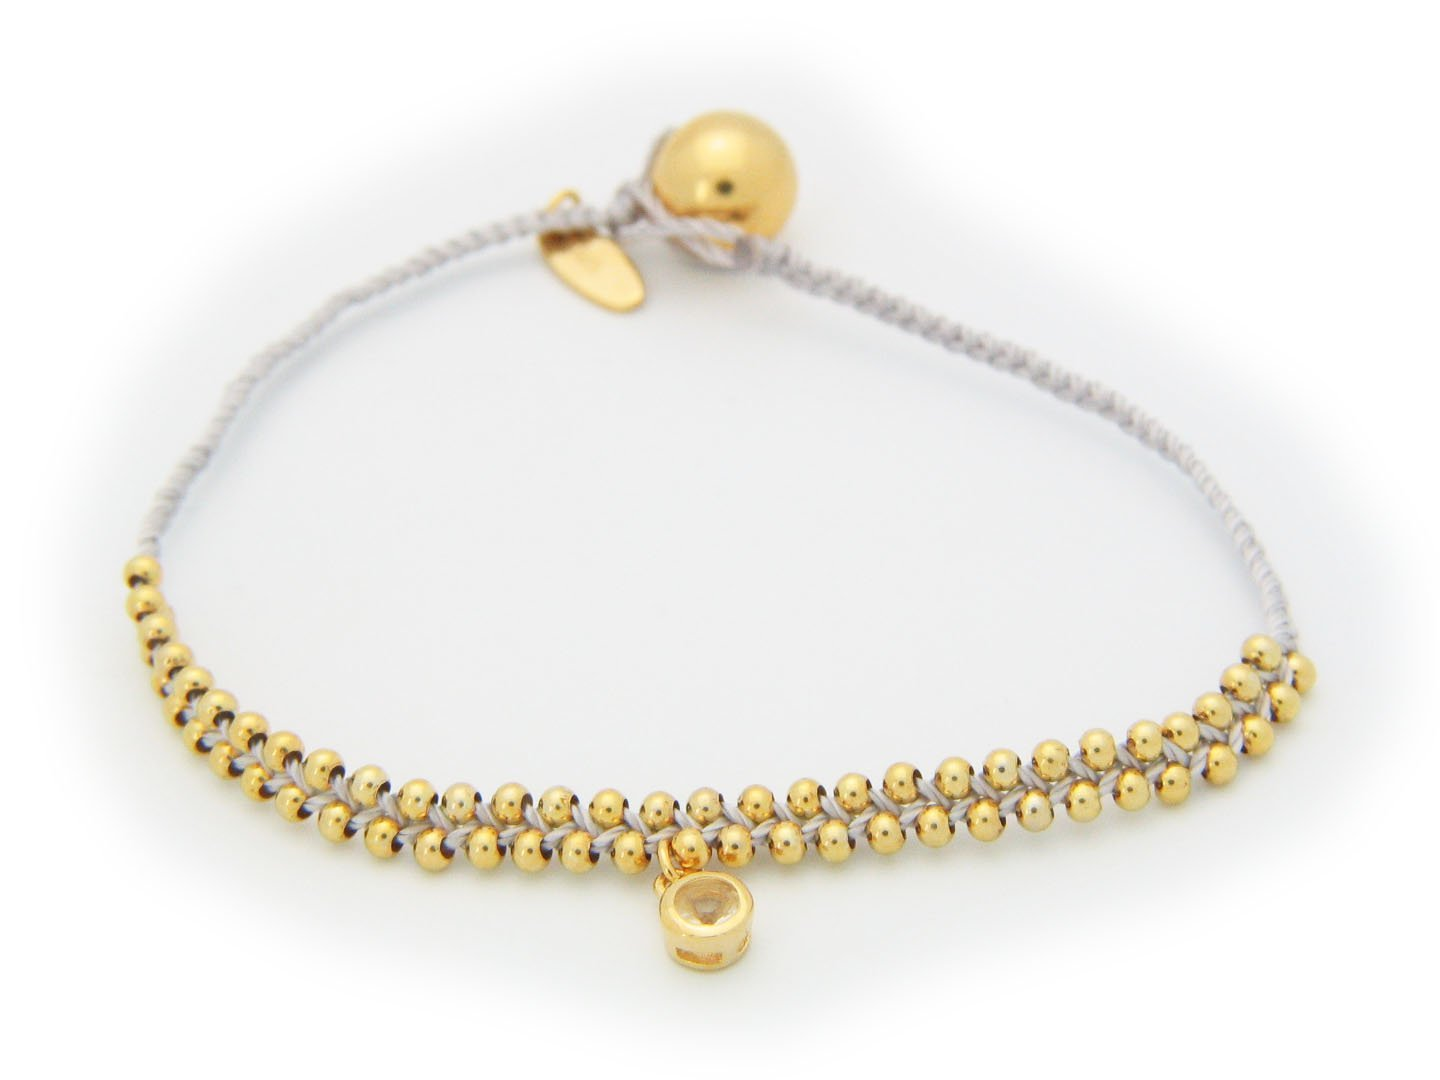 April Crystal (Cz) Ivory Cord Bracelet In Vermeil, 6""